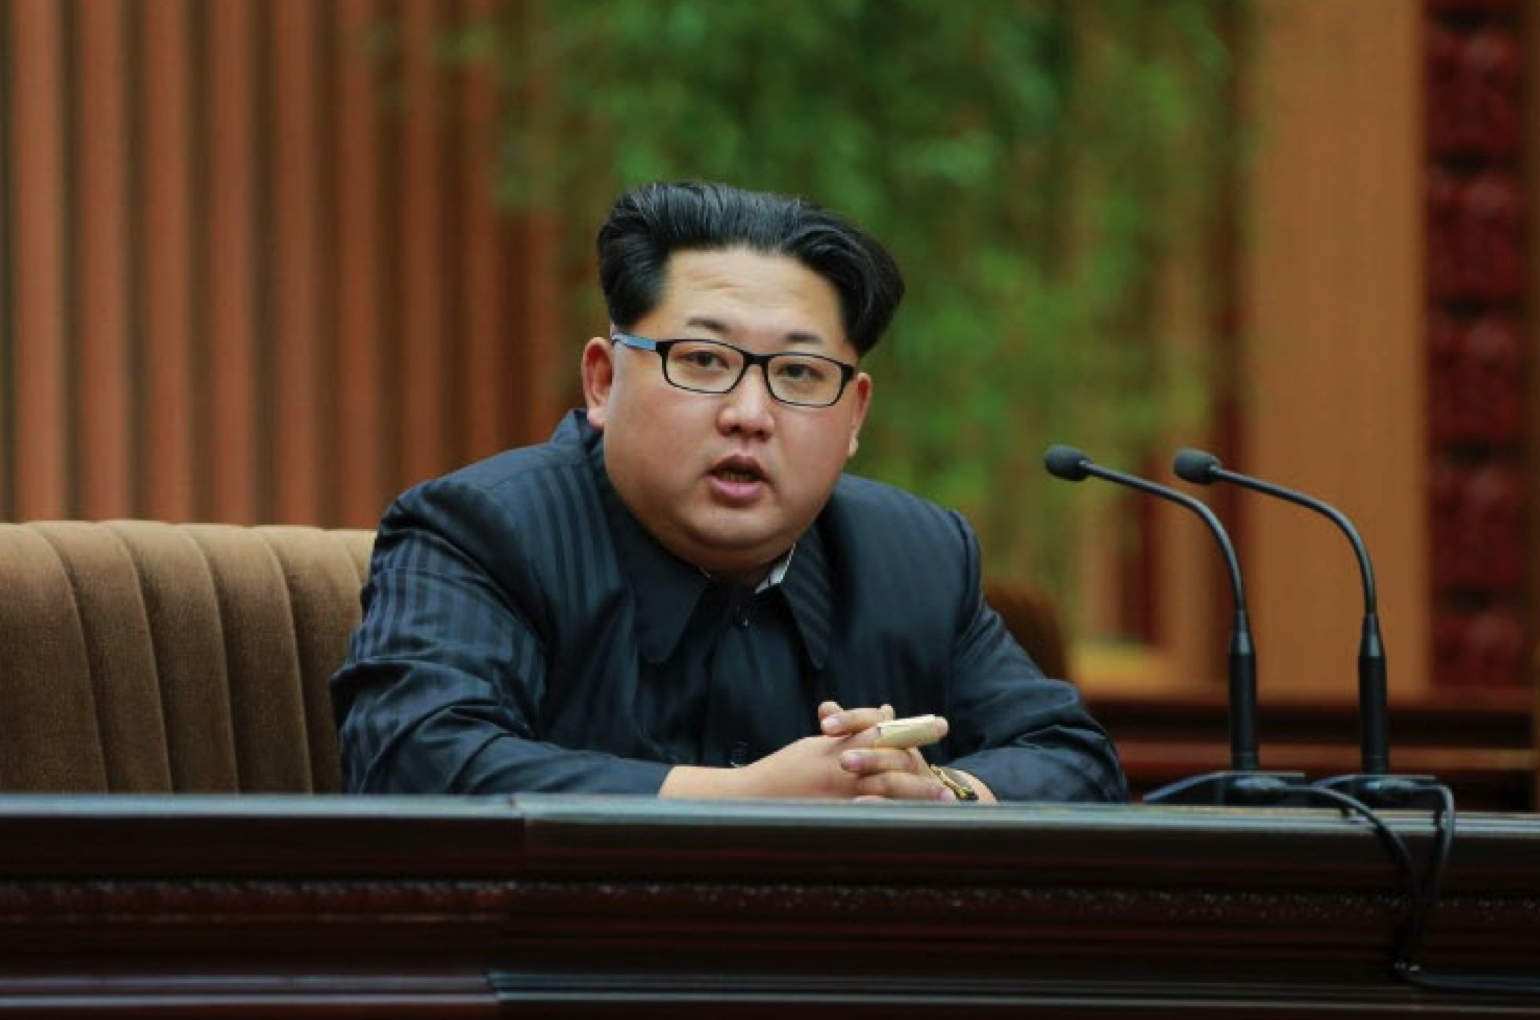 Kim Jong Un addresses personnel involved in the launch of the Kwangmyo'ngso'ng-4 at the Mansudae Assembly Hall in Pyongyang on February 17, 2016 (Photo: Rodong Sinmun).